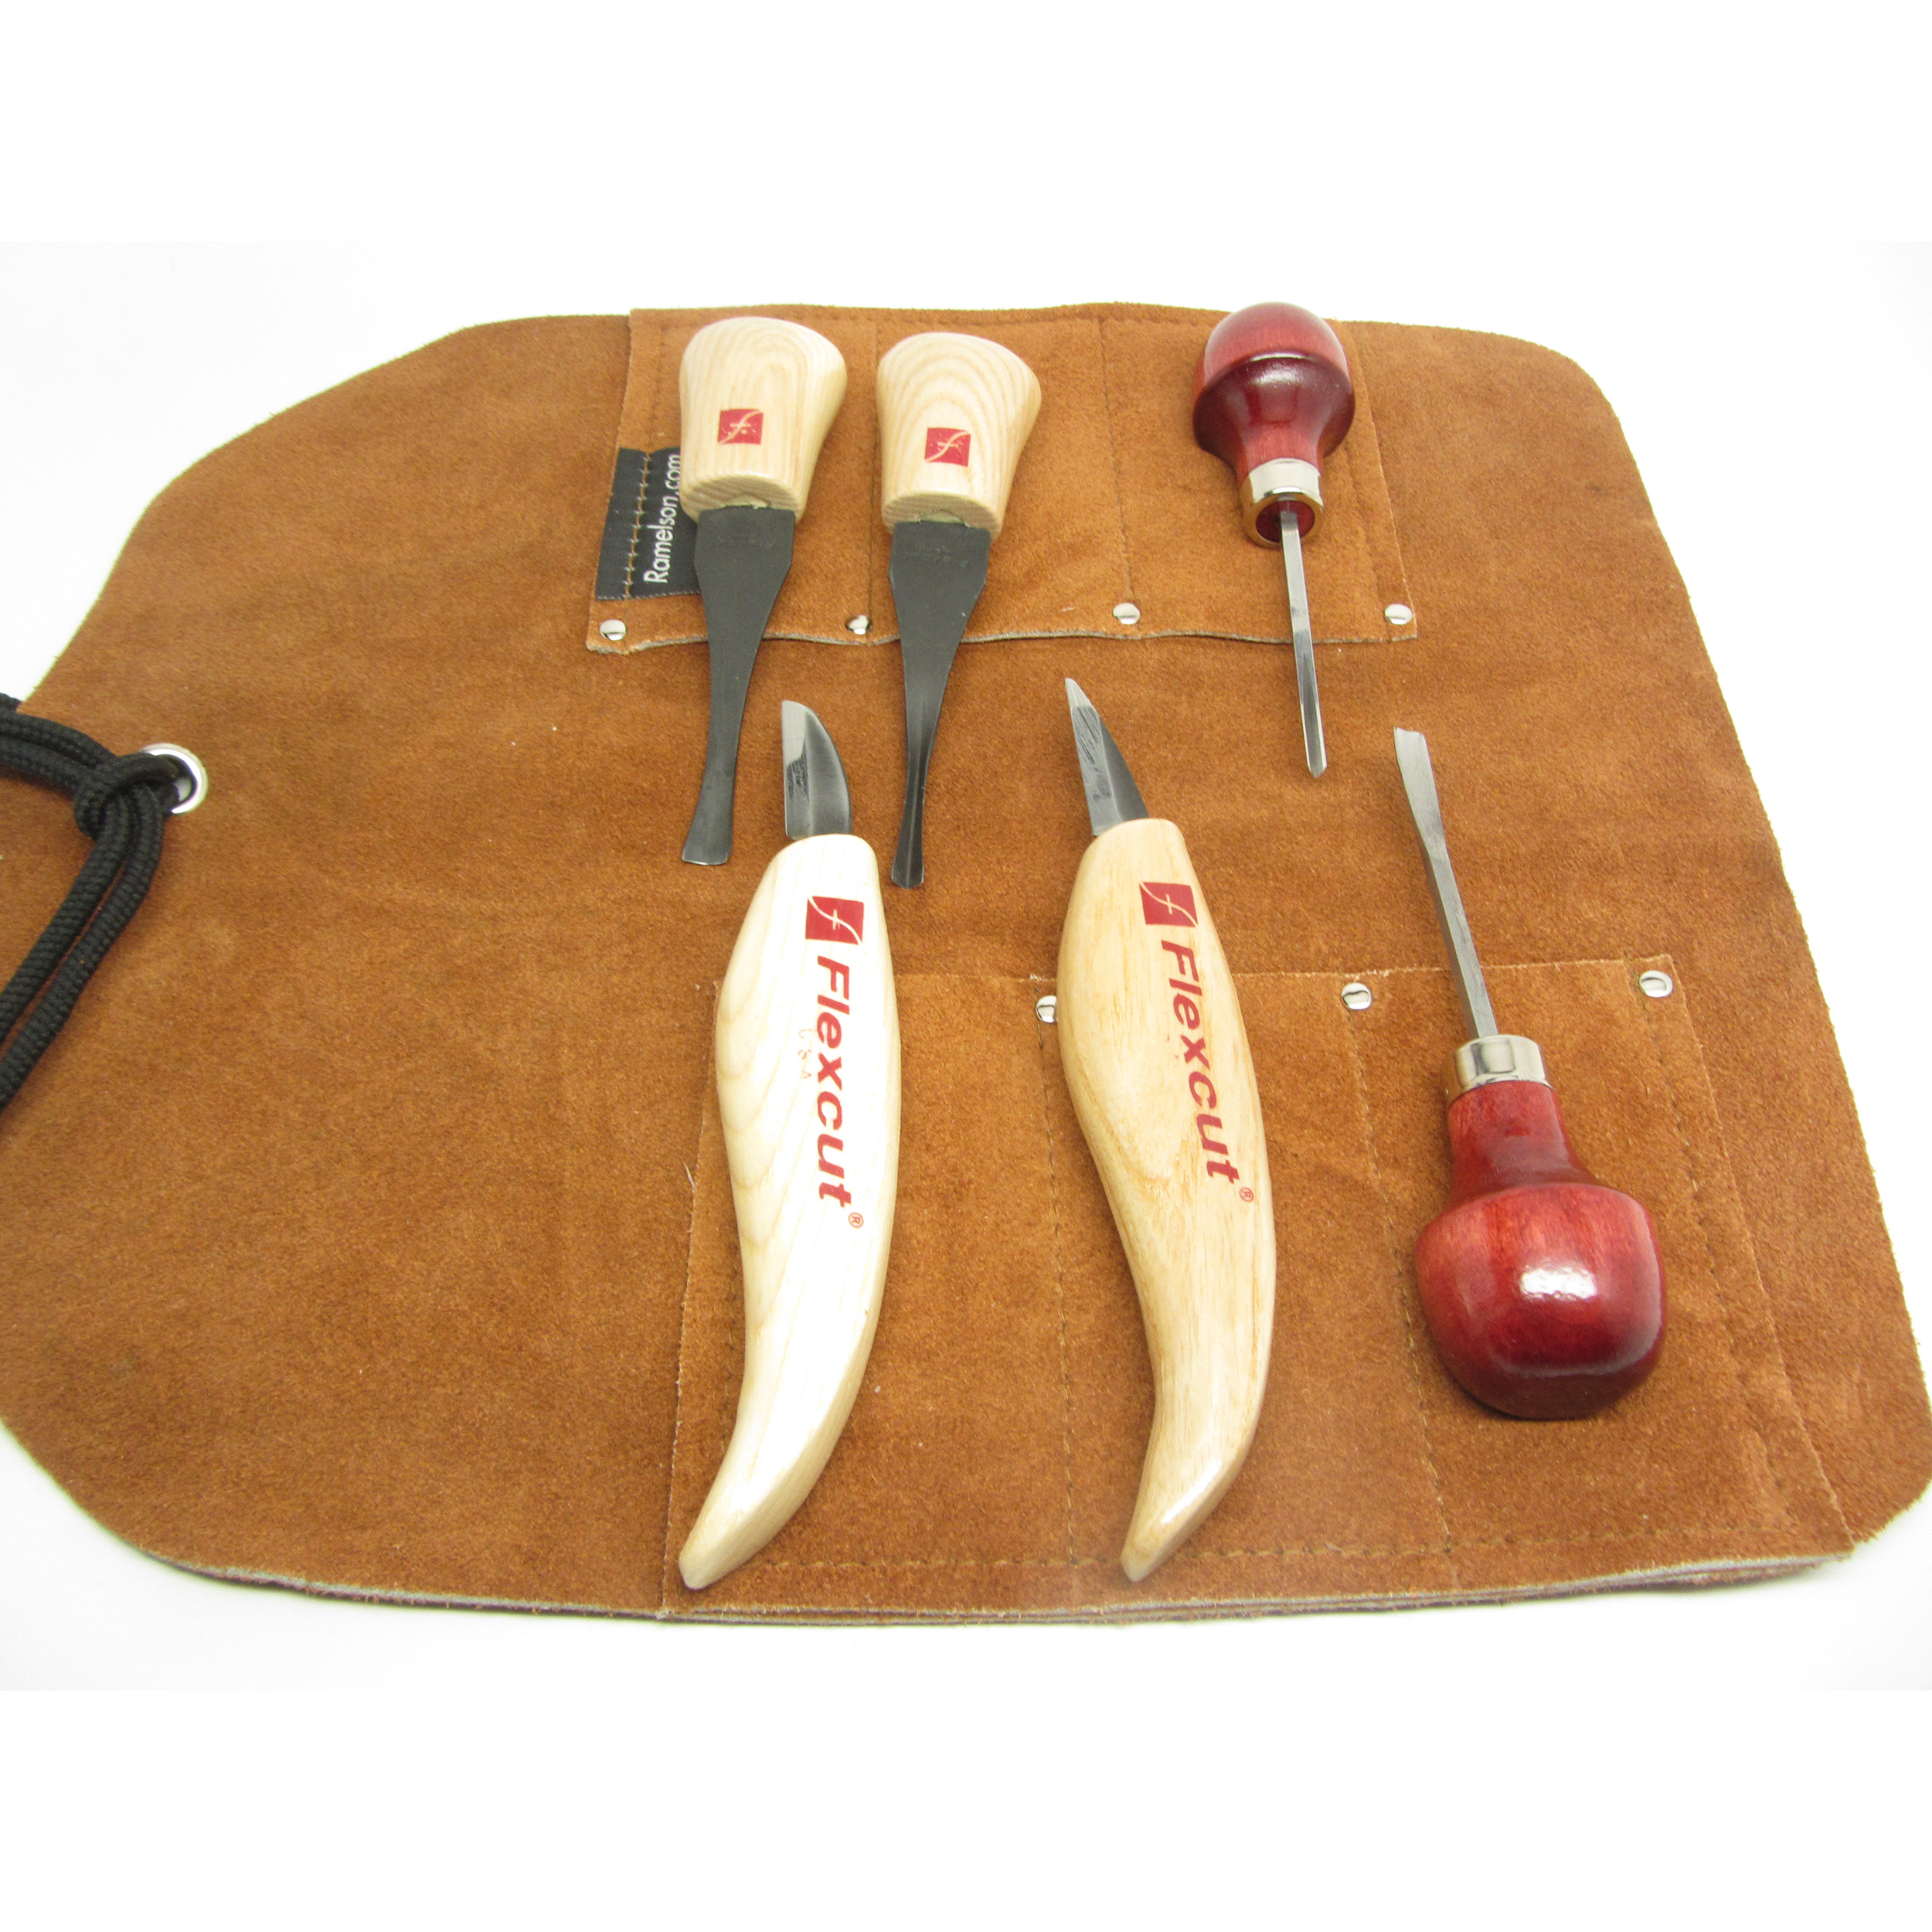 Gouge, V Palm Tool set, Flexcut MT 600  and Leather Tool Roll